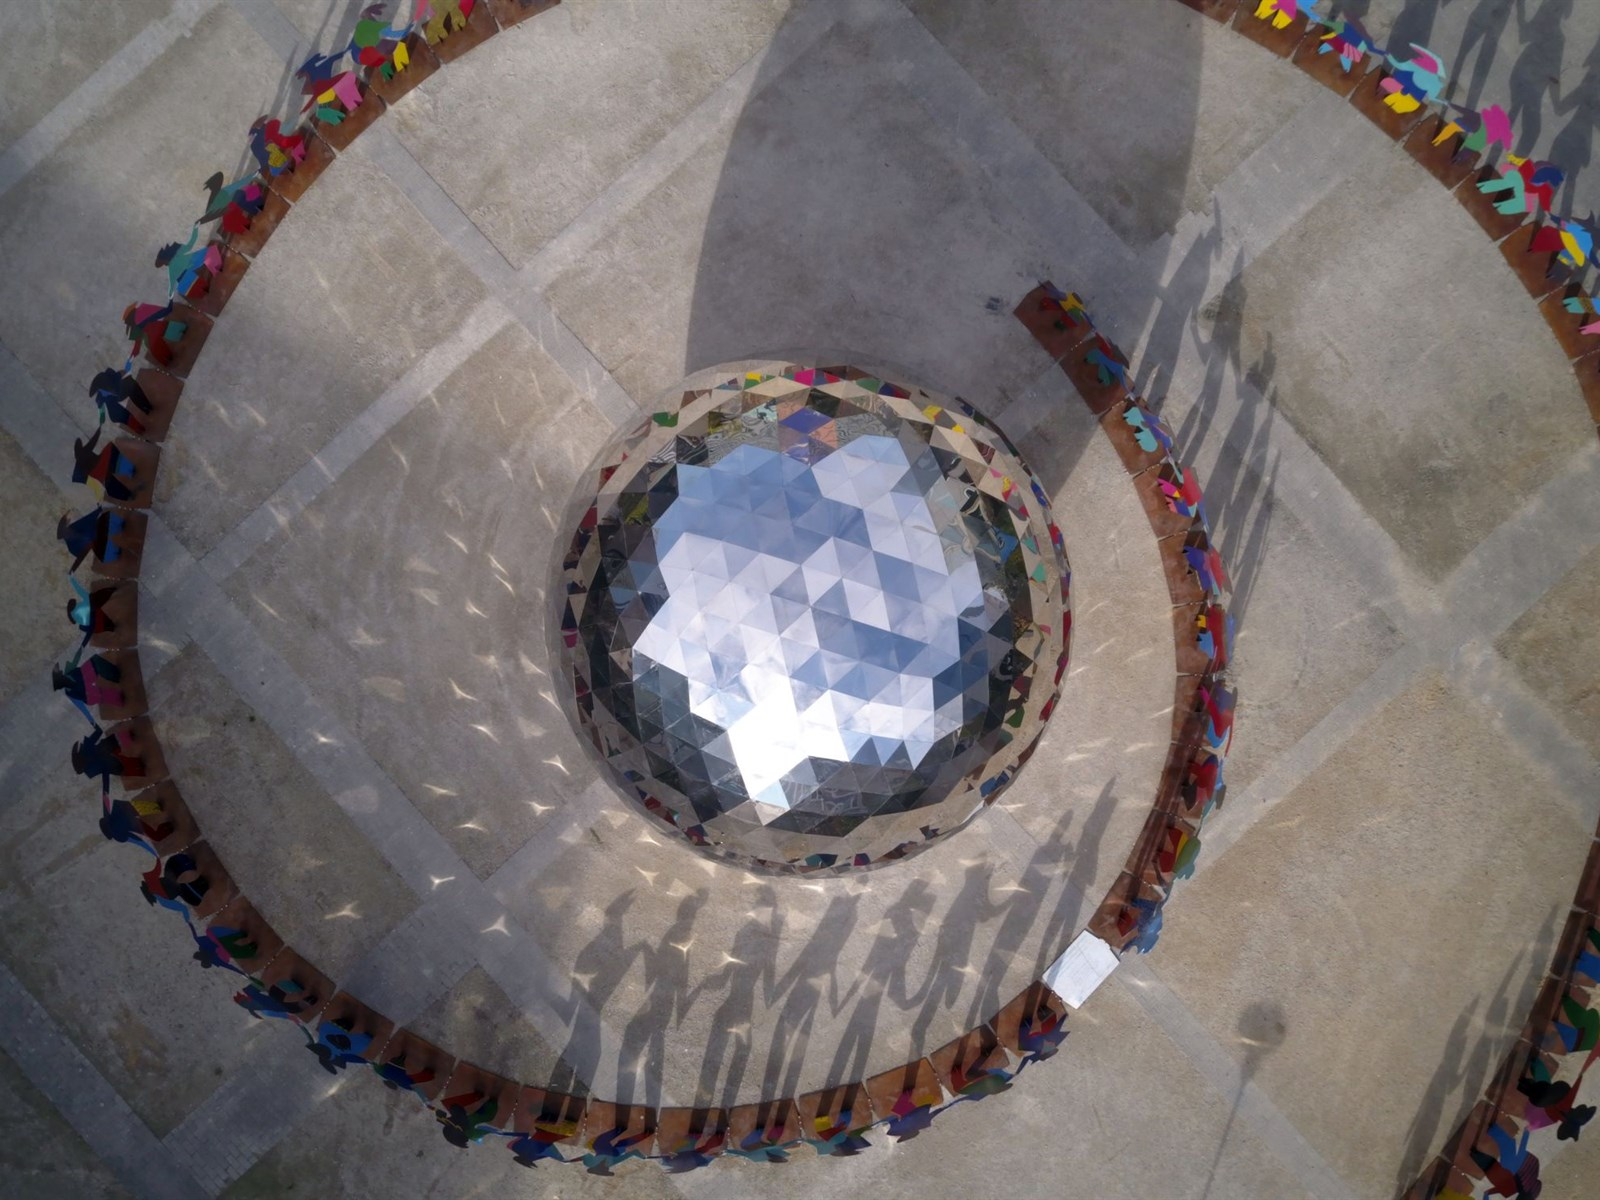 Enlightened Universe, areal view